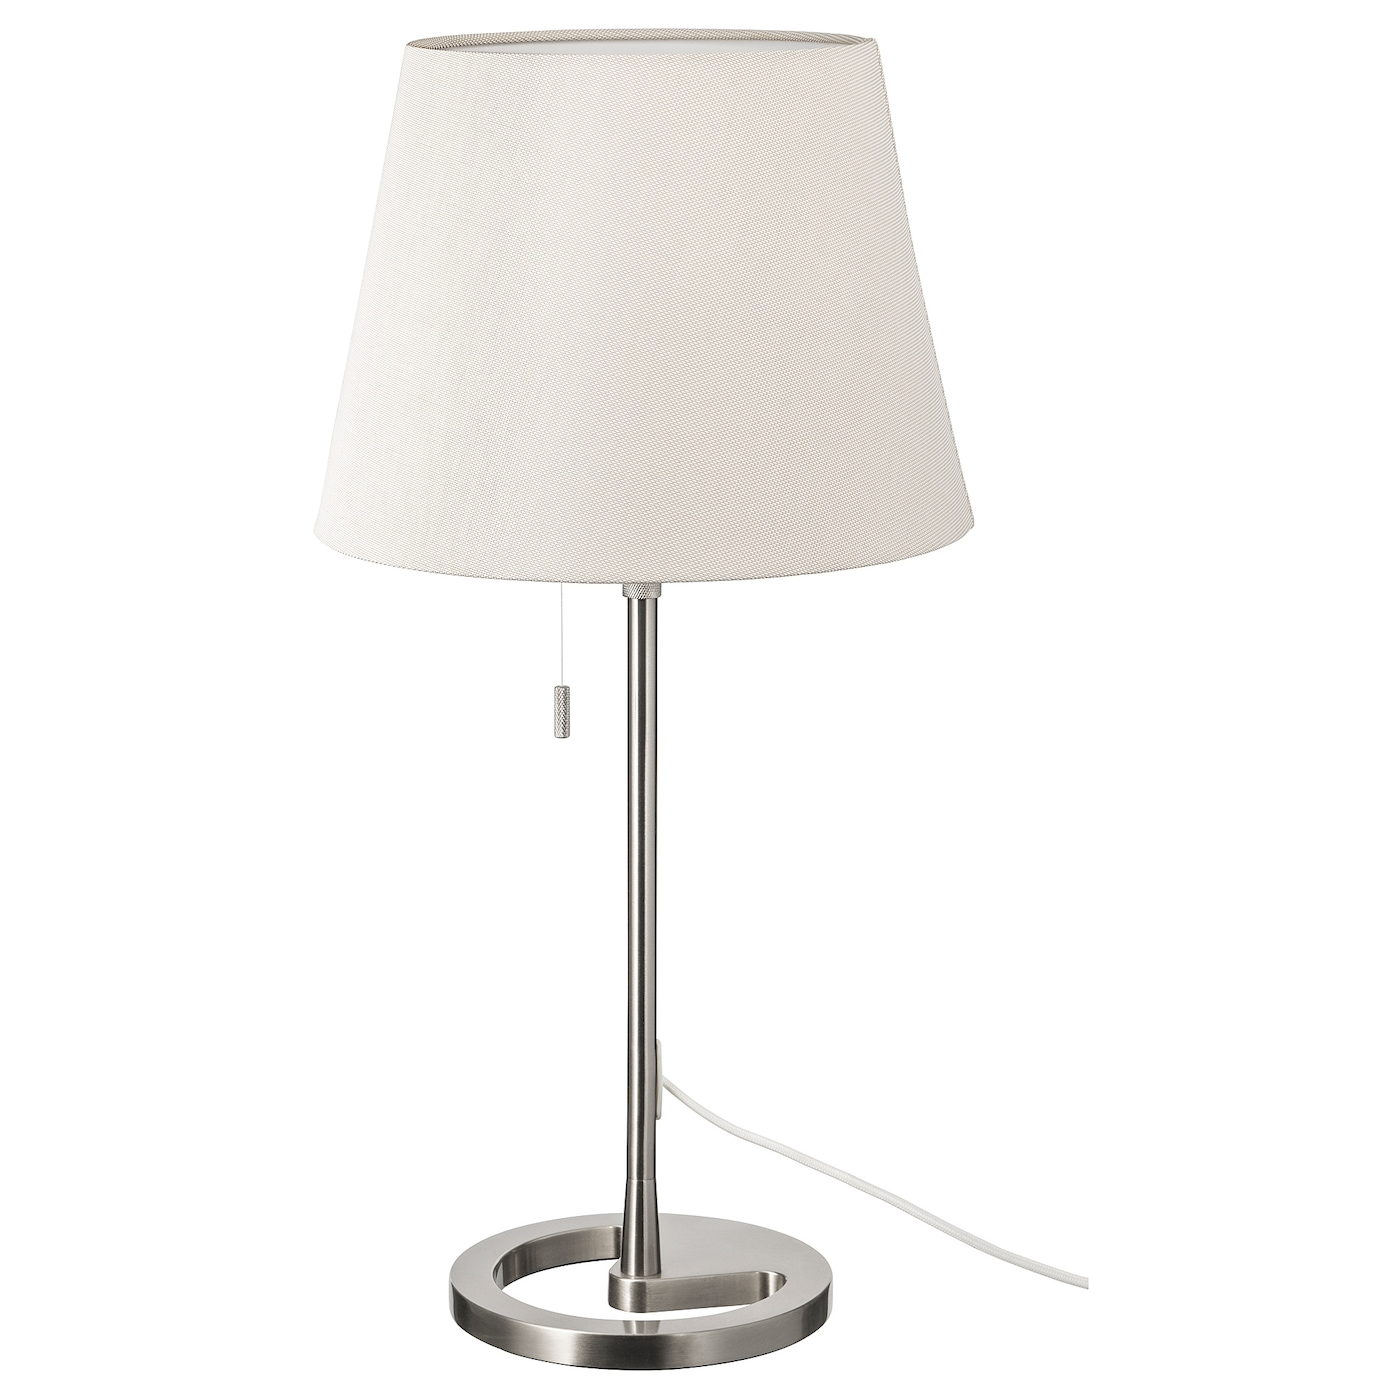 nyfors lampe de table nickel blanc ikea. Black Bedroom Furniture Sets. Home Design Ideas